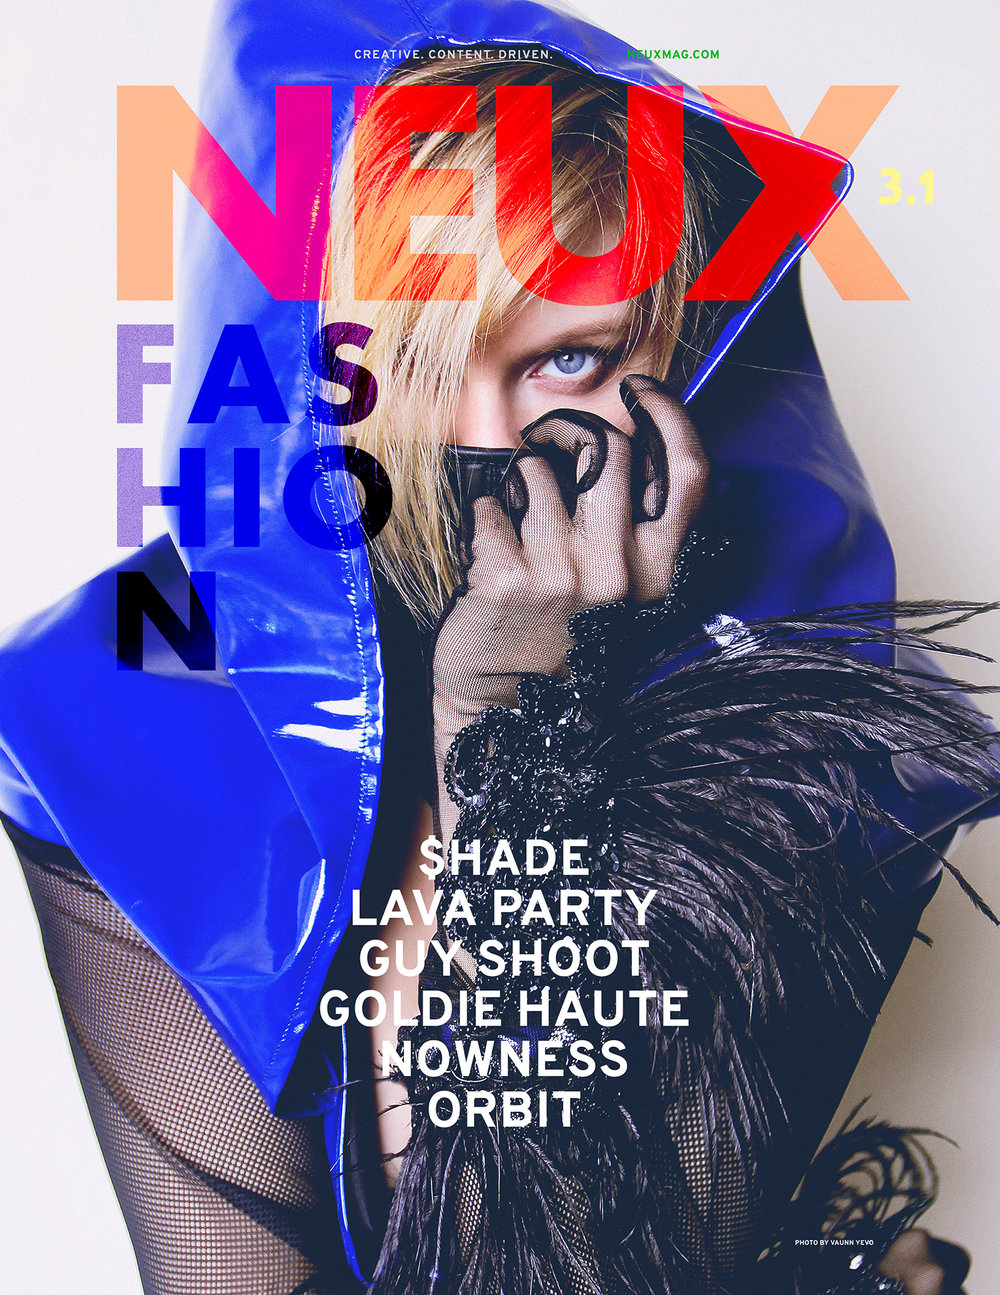 NeuxMag_Feb2018_Fashion_Cover_112017_Muse_vy_hr_preFNL_RAchelZimmerman_144ppi.jpg